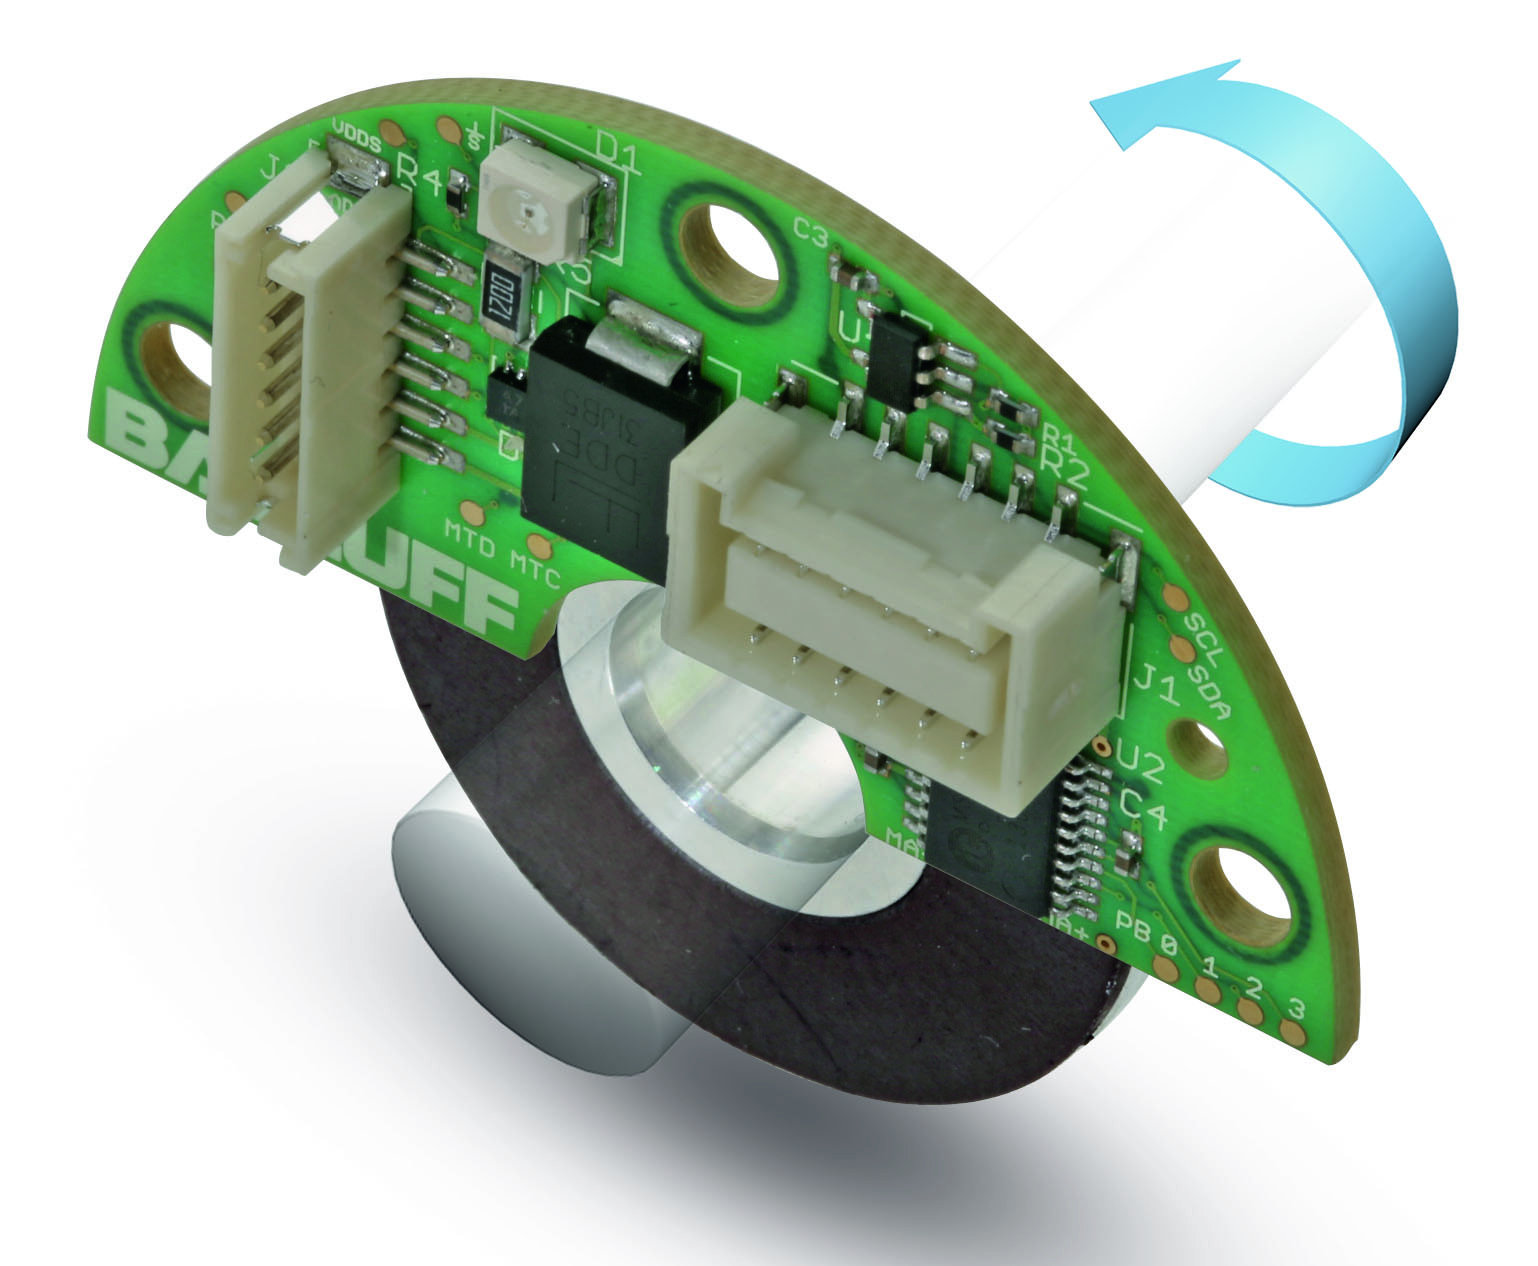 Absolute Rotary Encoder Sensing Technology Optical And